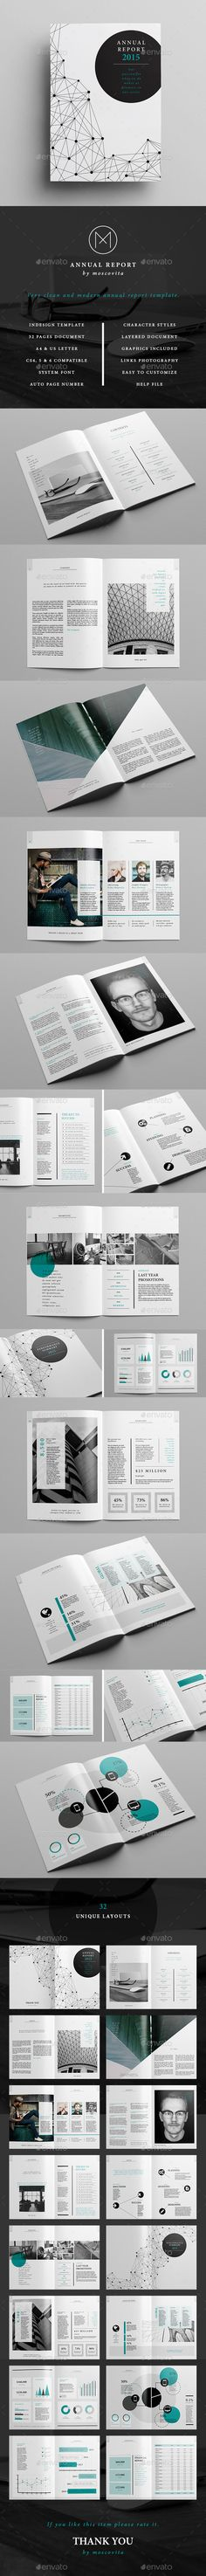 The Annual Report Template is perfect for the publication of a complete and professional annual report. It's divided into a first part with photos and narrative to provide all the interesting information about the company and a second part, contains the financial details with graphics for a visual result. Download: http://graphicriver.net/item/annual-report/11224010?ref=ksioks